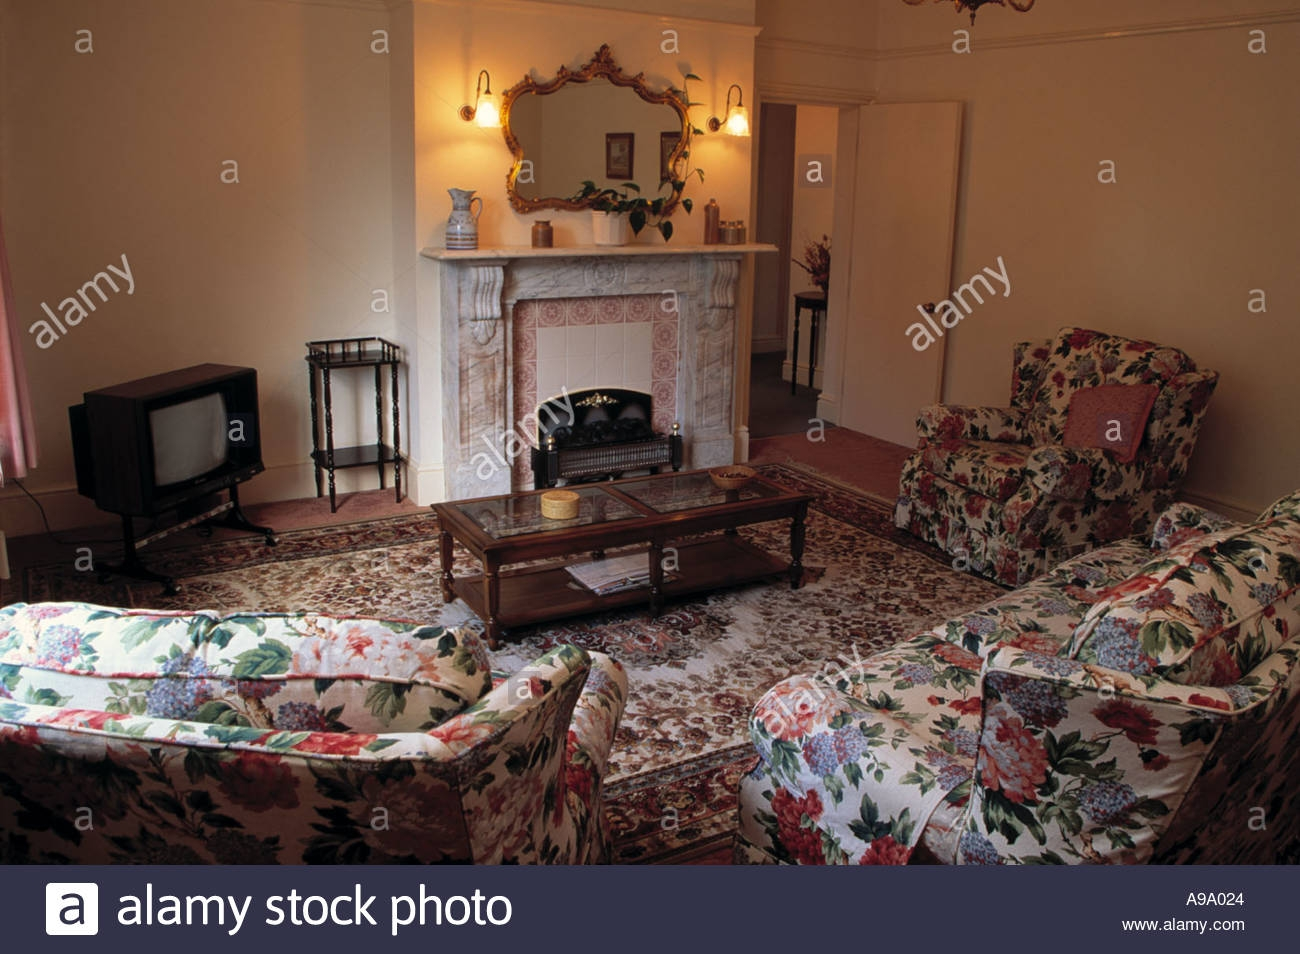 Chintz Sofa And Armchairs In Dated Living Room With Television In For Chintz Sofas (Image 1 of 15)